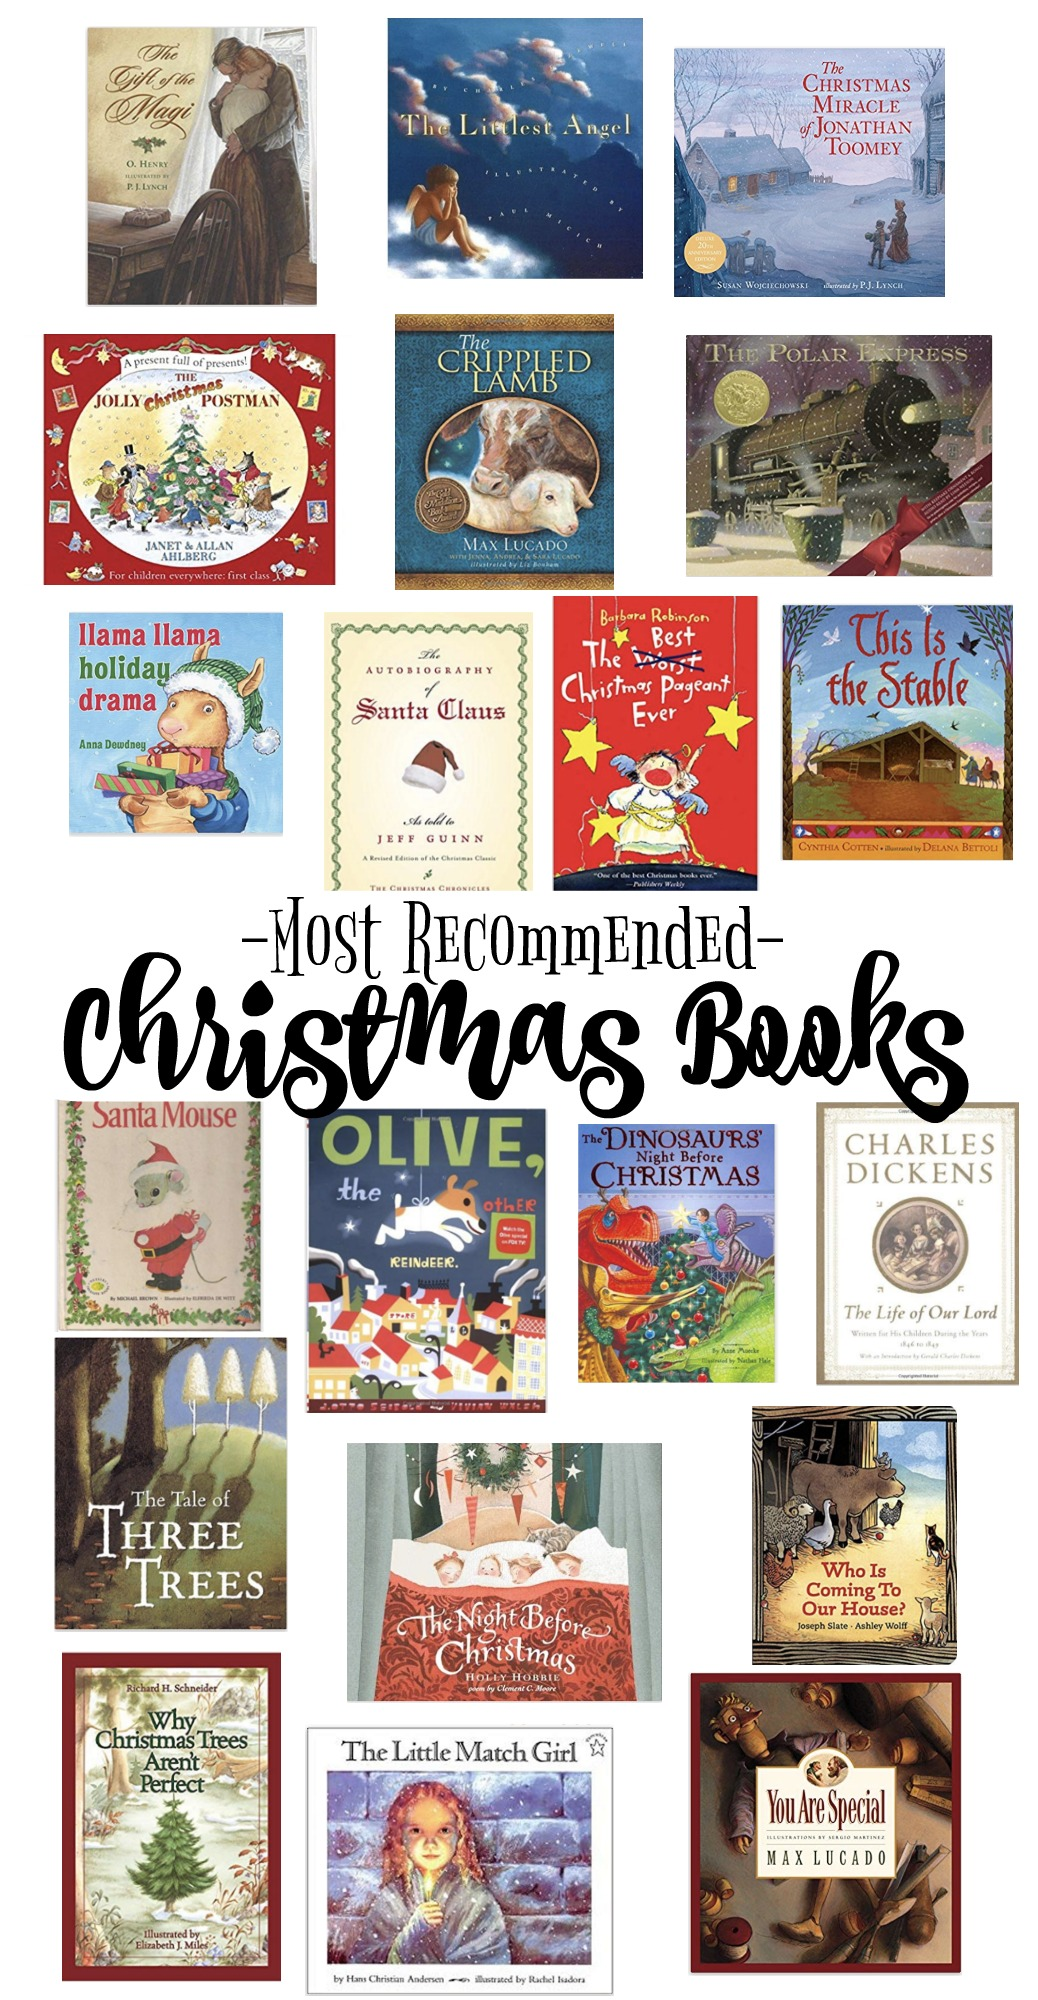 Most Recommended Christmas Books